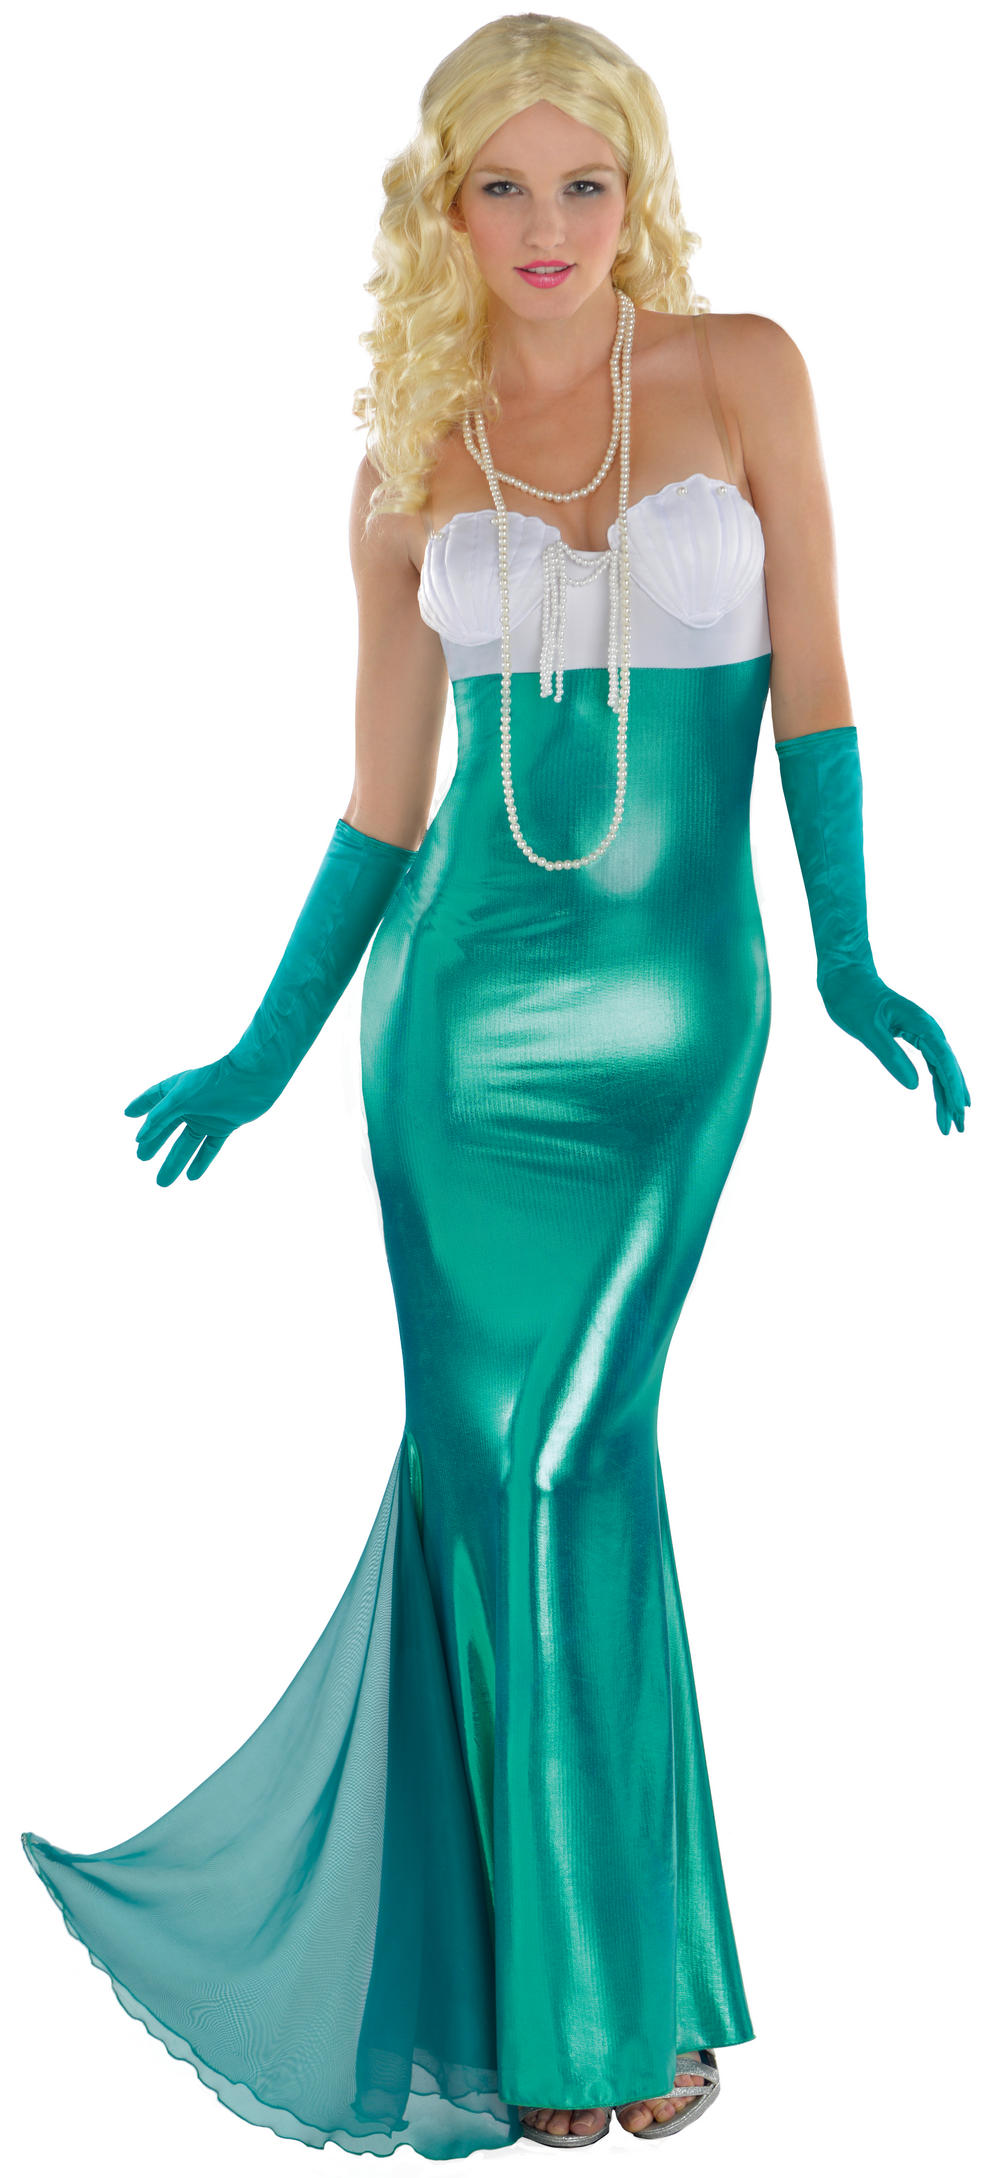 Adults Sexy Mermaid Costume  sc 1 st  Mega Fancy Dress & Adults Sexy Mermaid Costume | Adult Book Day Fancy Dress | Mega ...